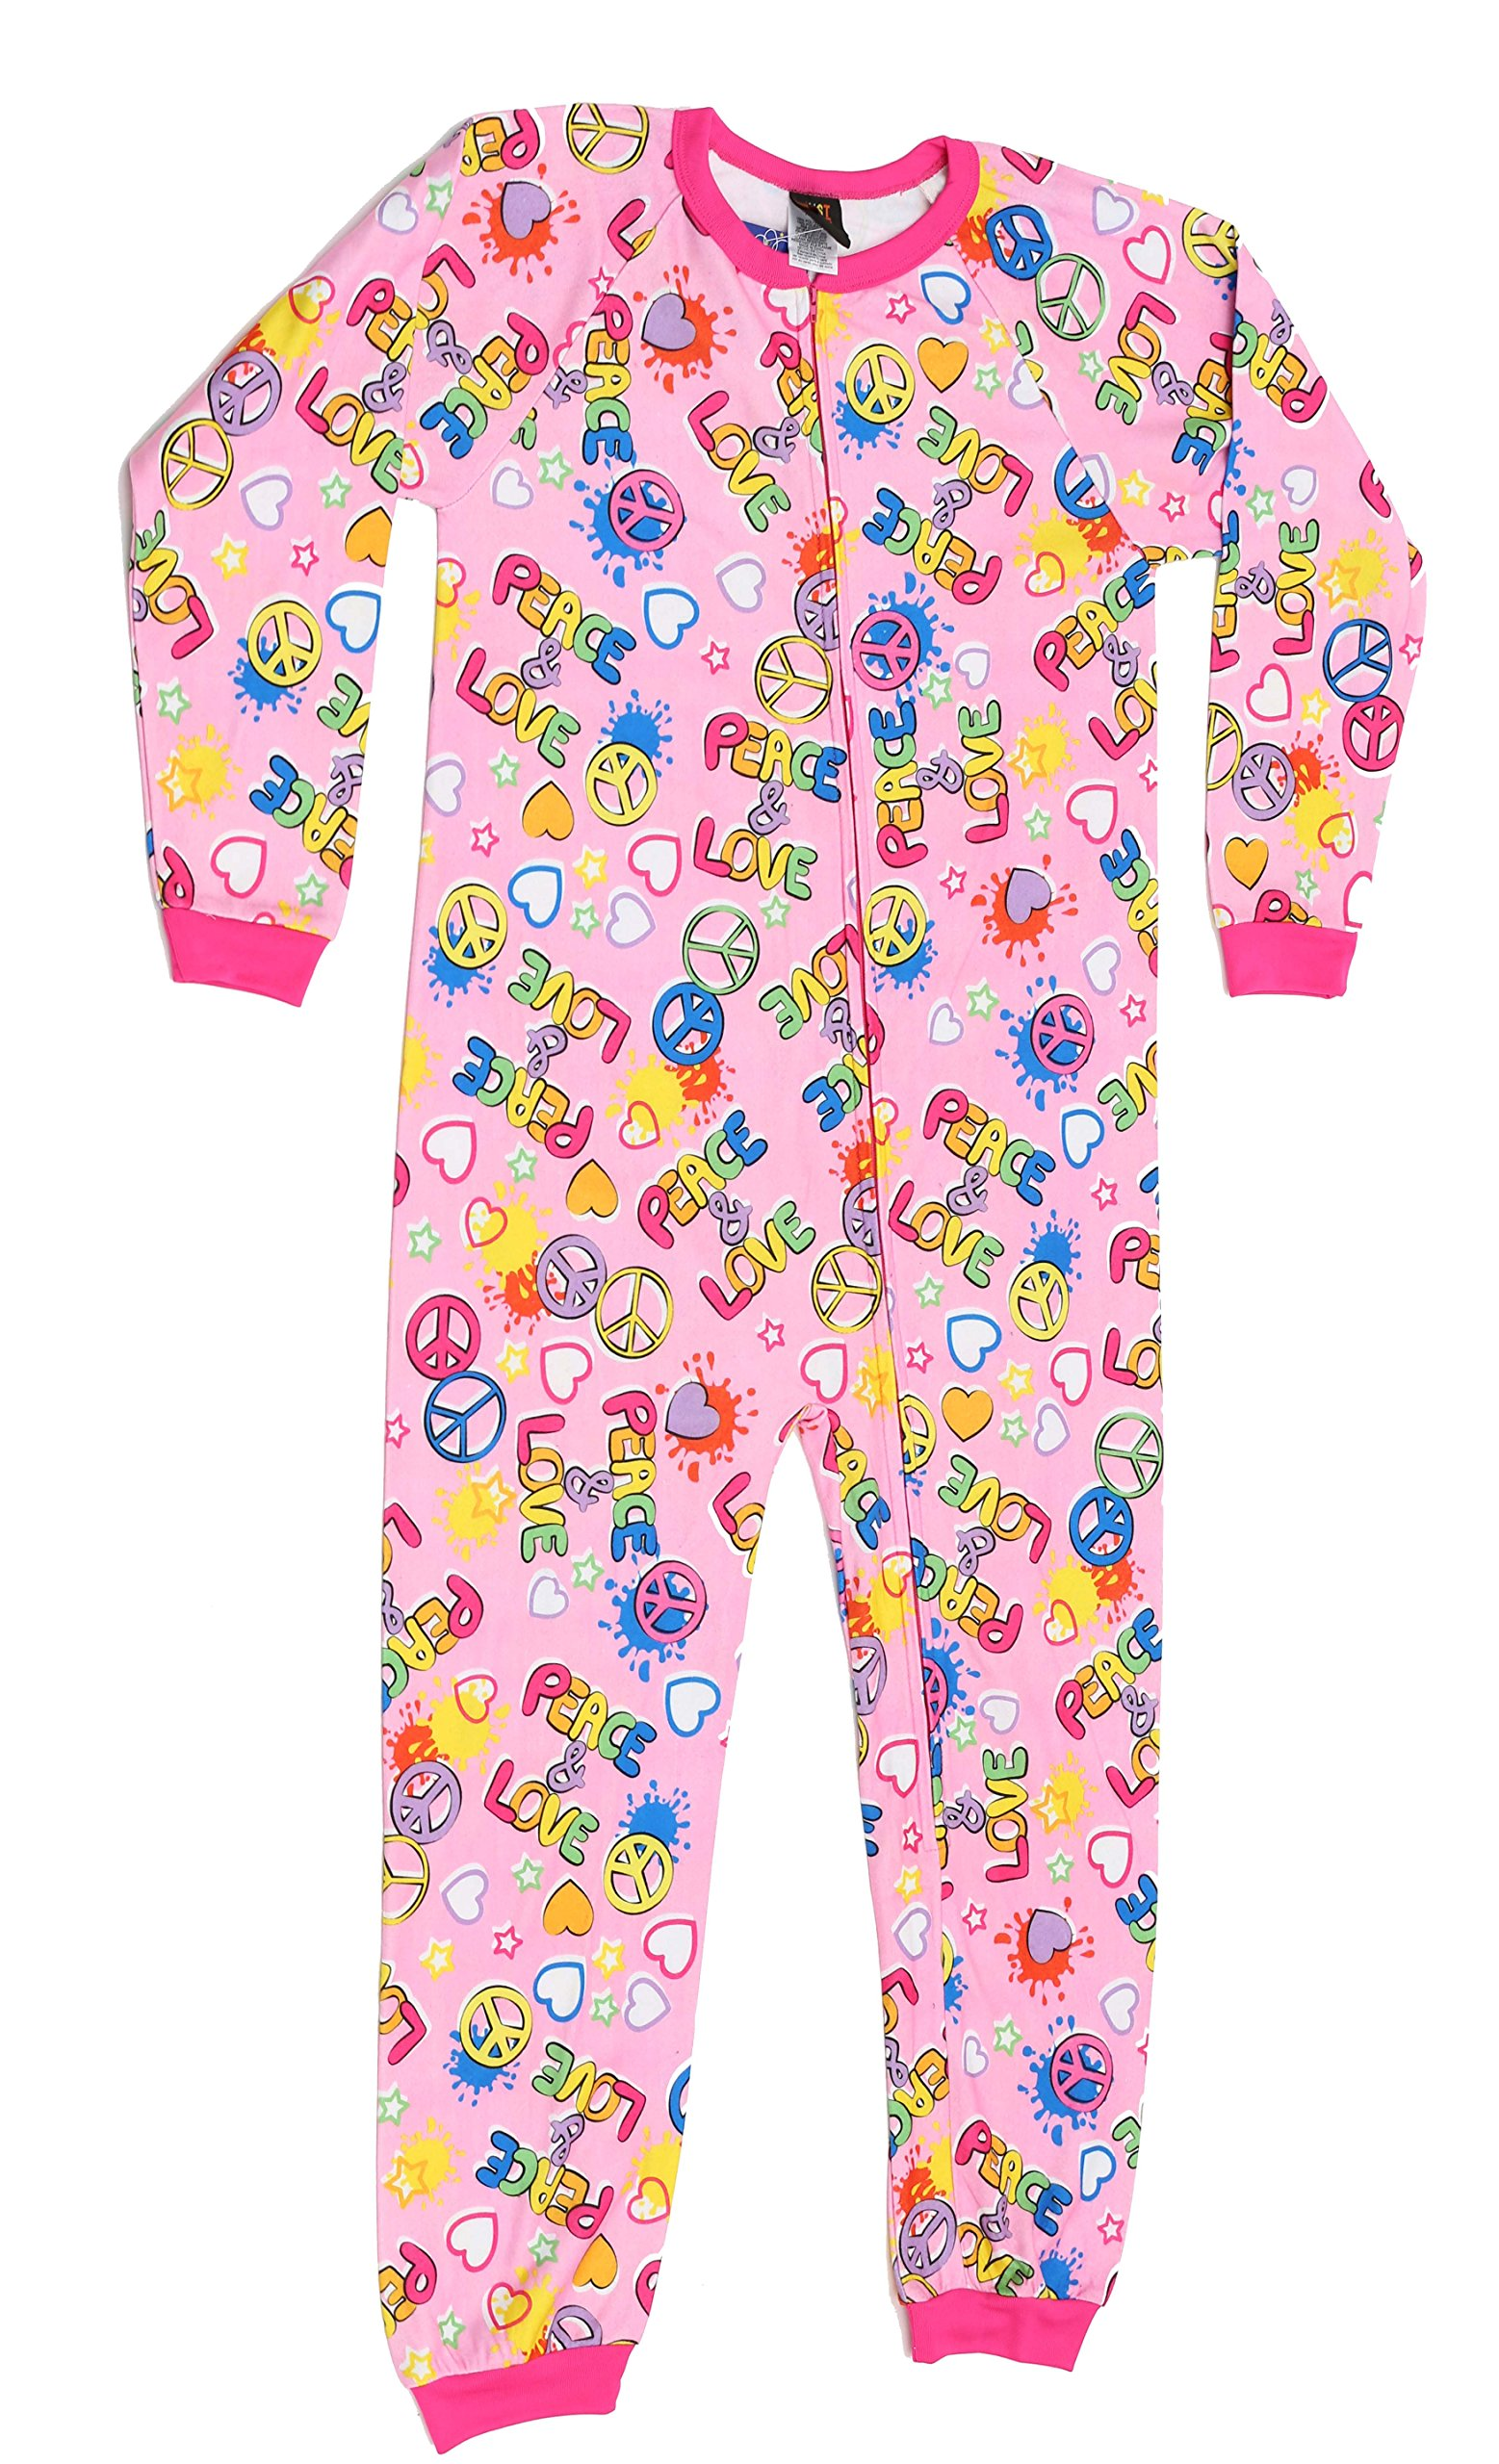 Just Love Printed Flannel Blanket Sleepers Peace Love Girls' 10-12 by Just Love (Image #2)